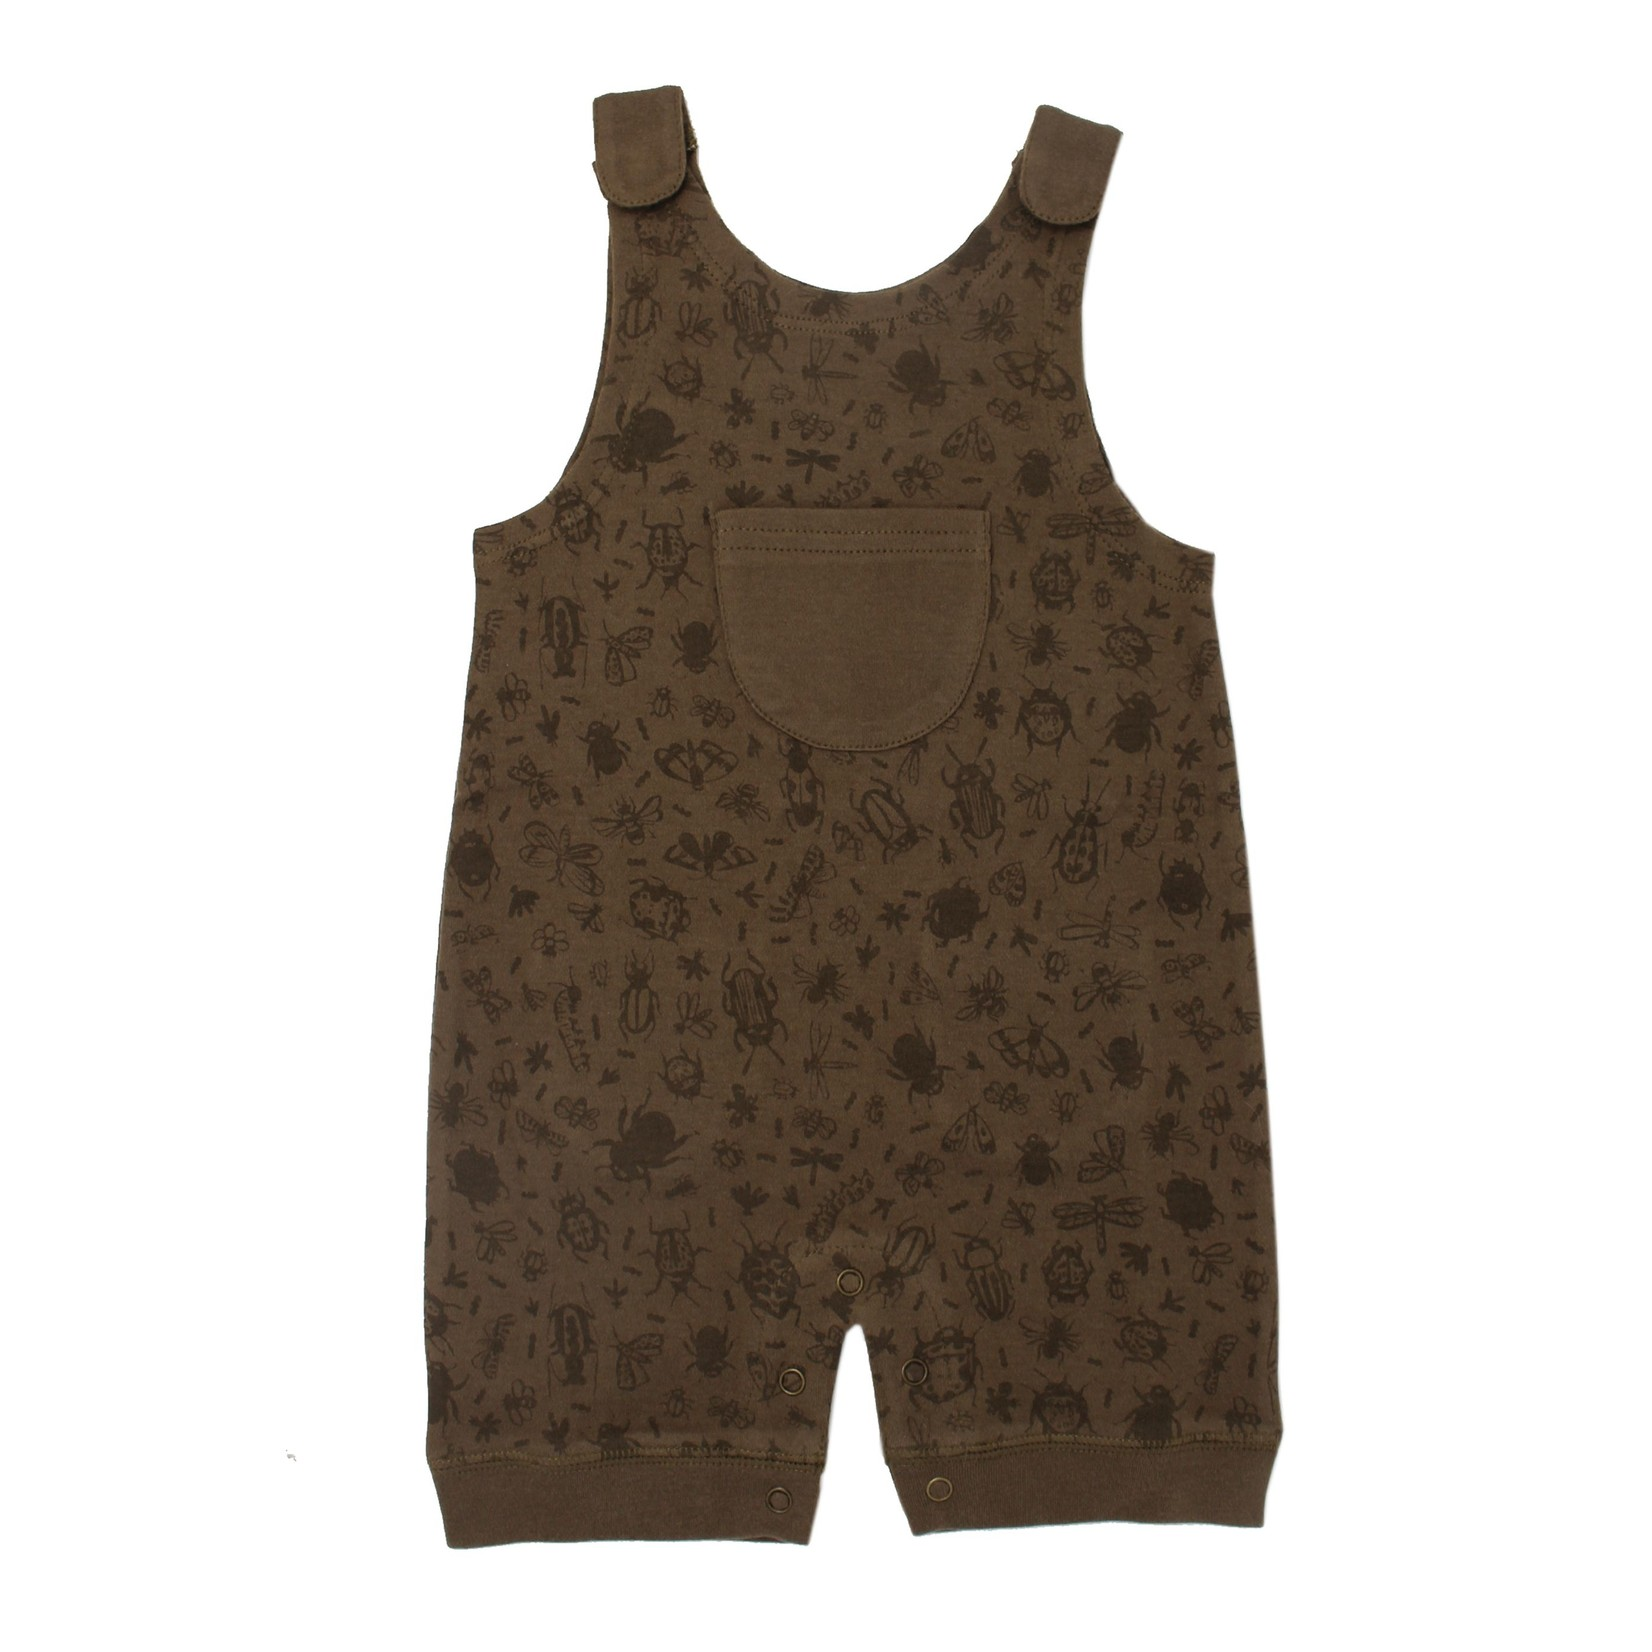 L'oved Baby Kid's Don't Bug Me Printed Sleeveless Romper